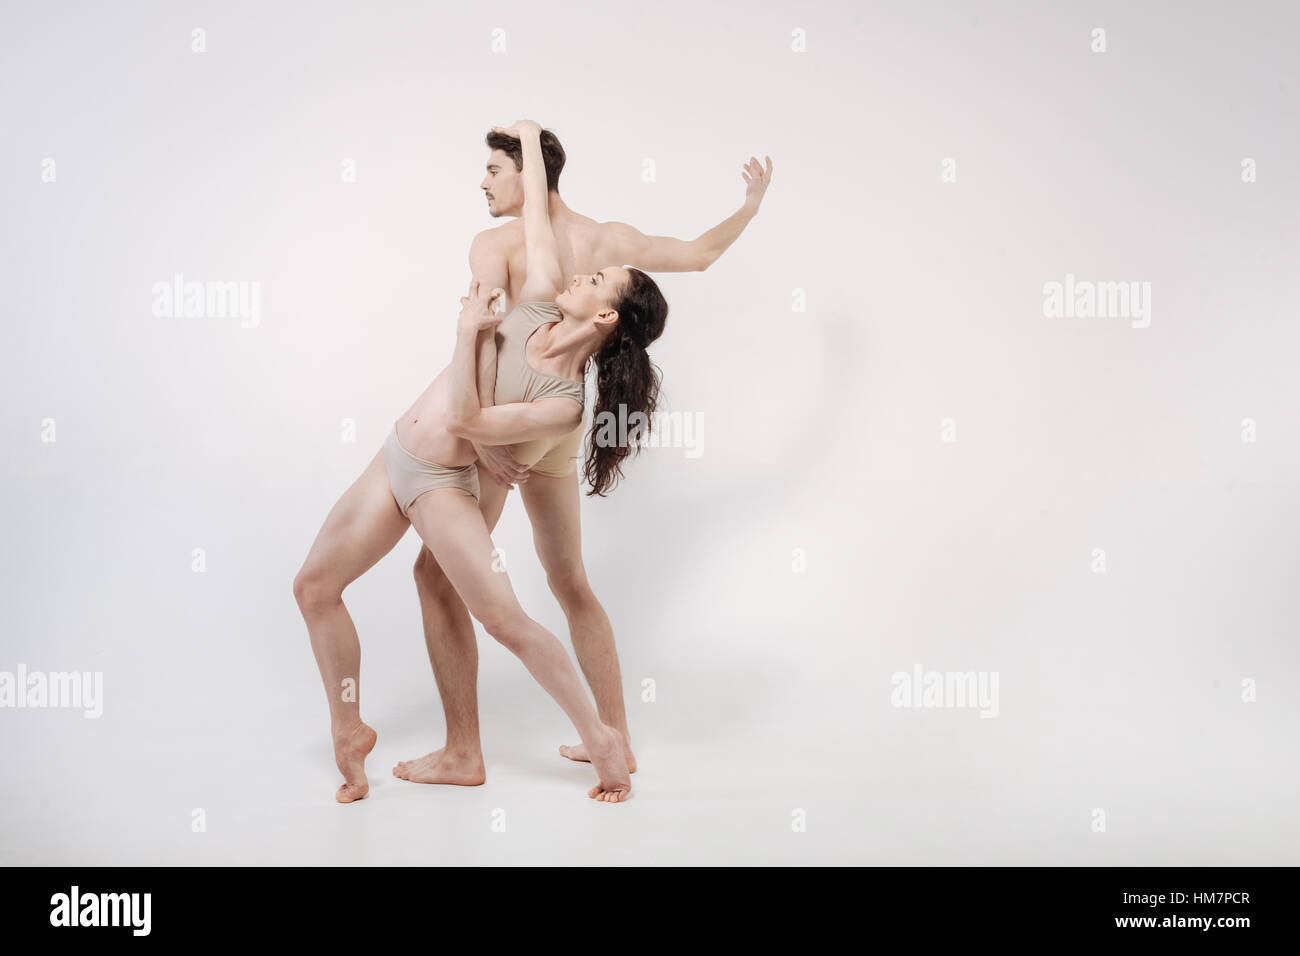 Amusing young gymnasts dancing in the white colored studio - Stock Image